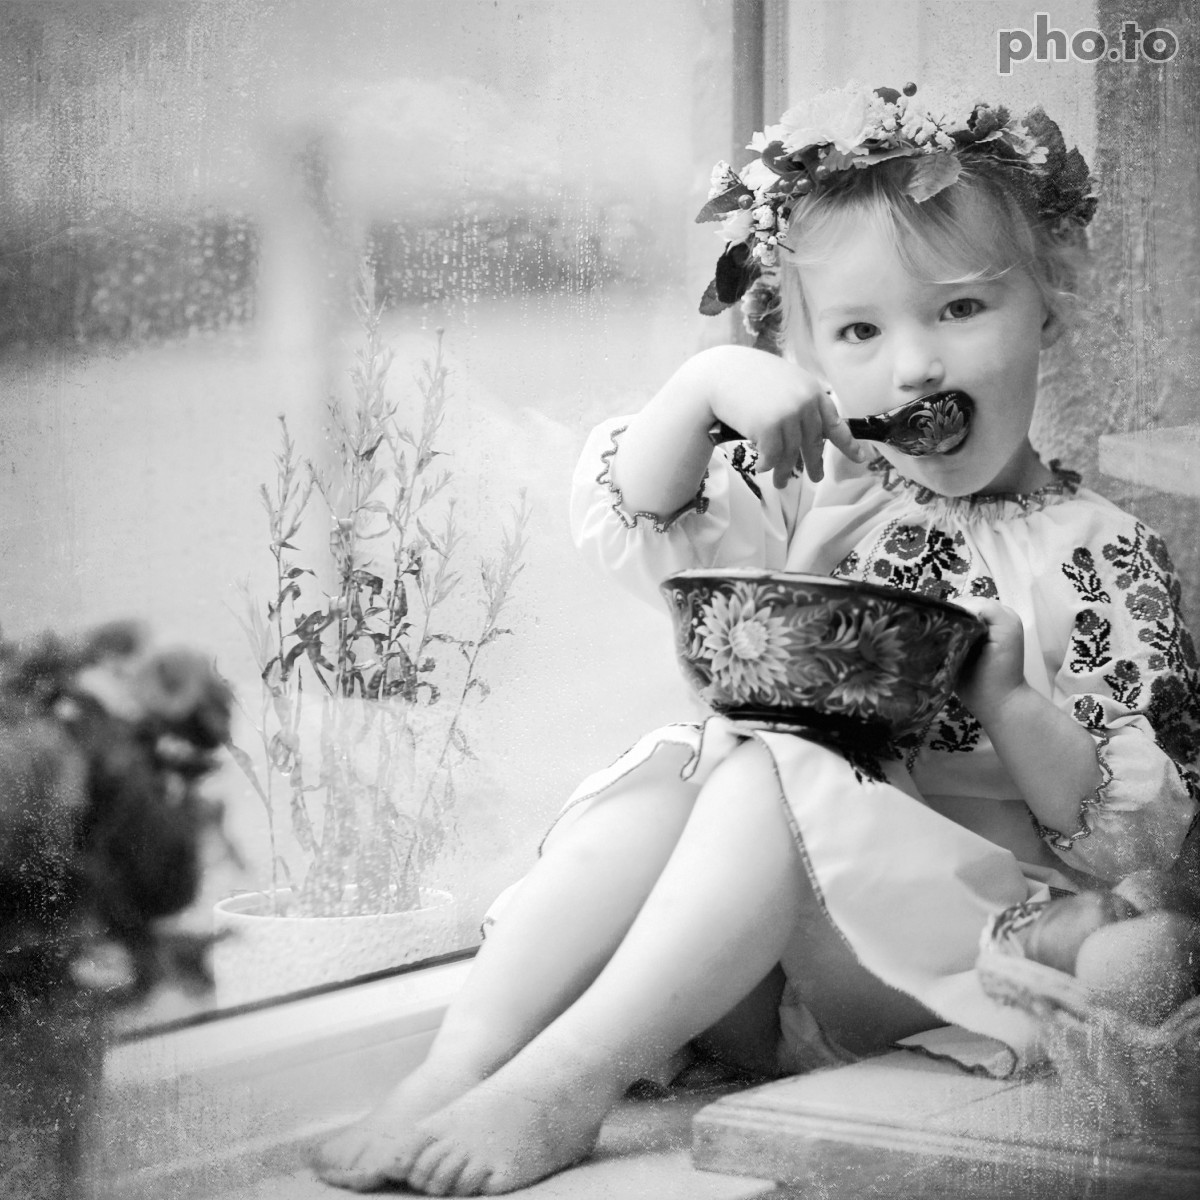 A pretty little girl's photo was converted to black and white online